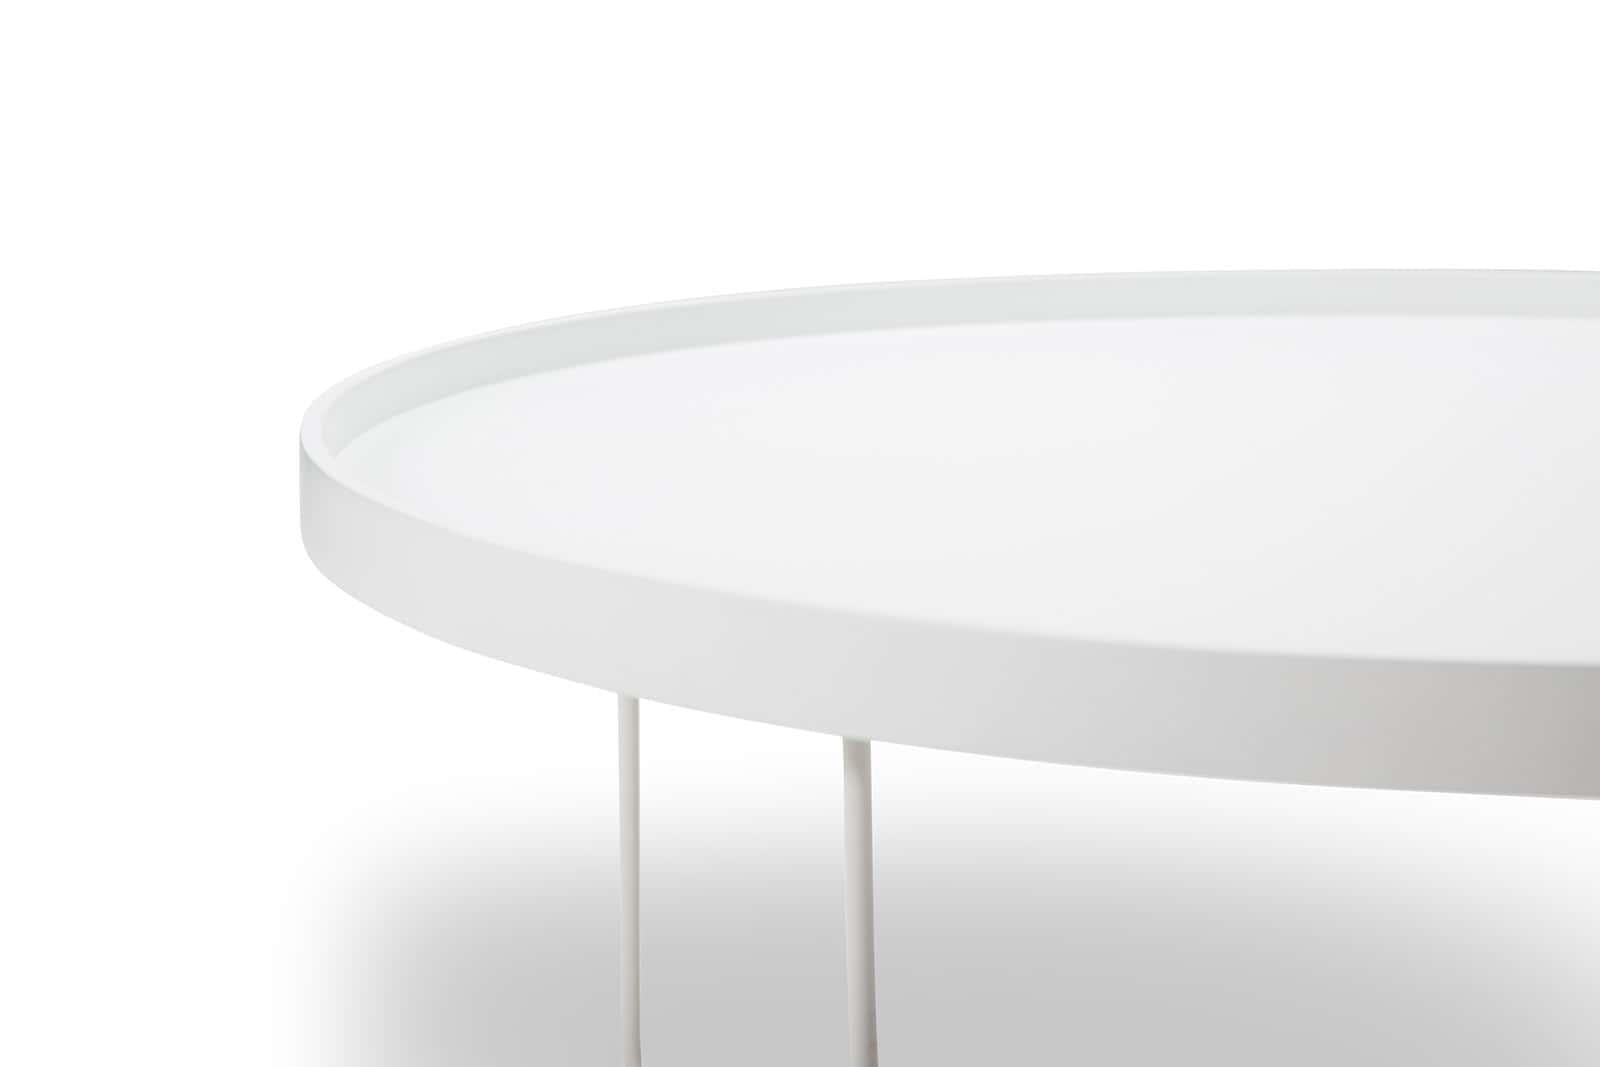 Ryland Scandinavian Style Tray Coffee Table - White with Metal Legs